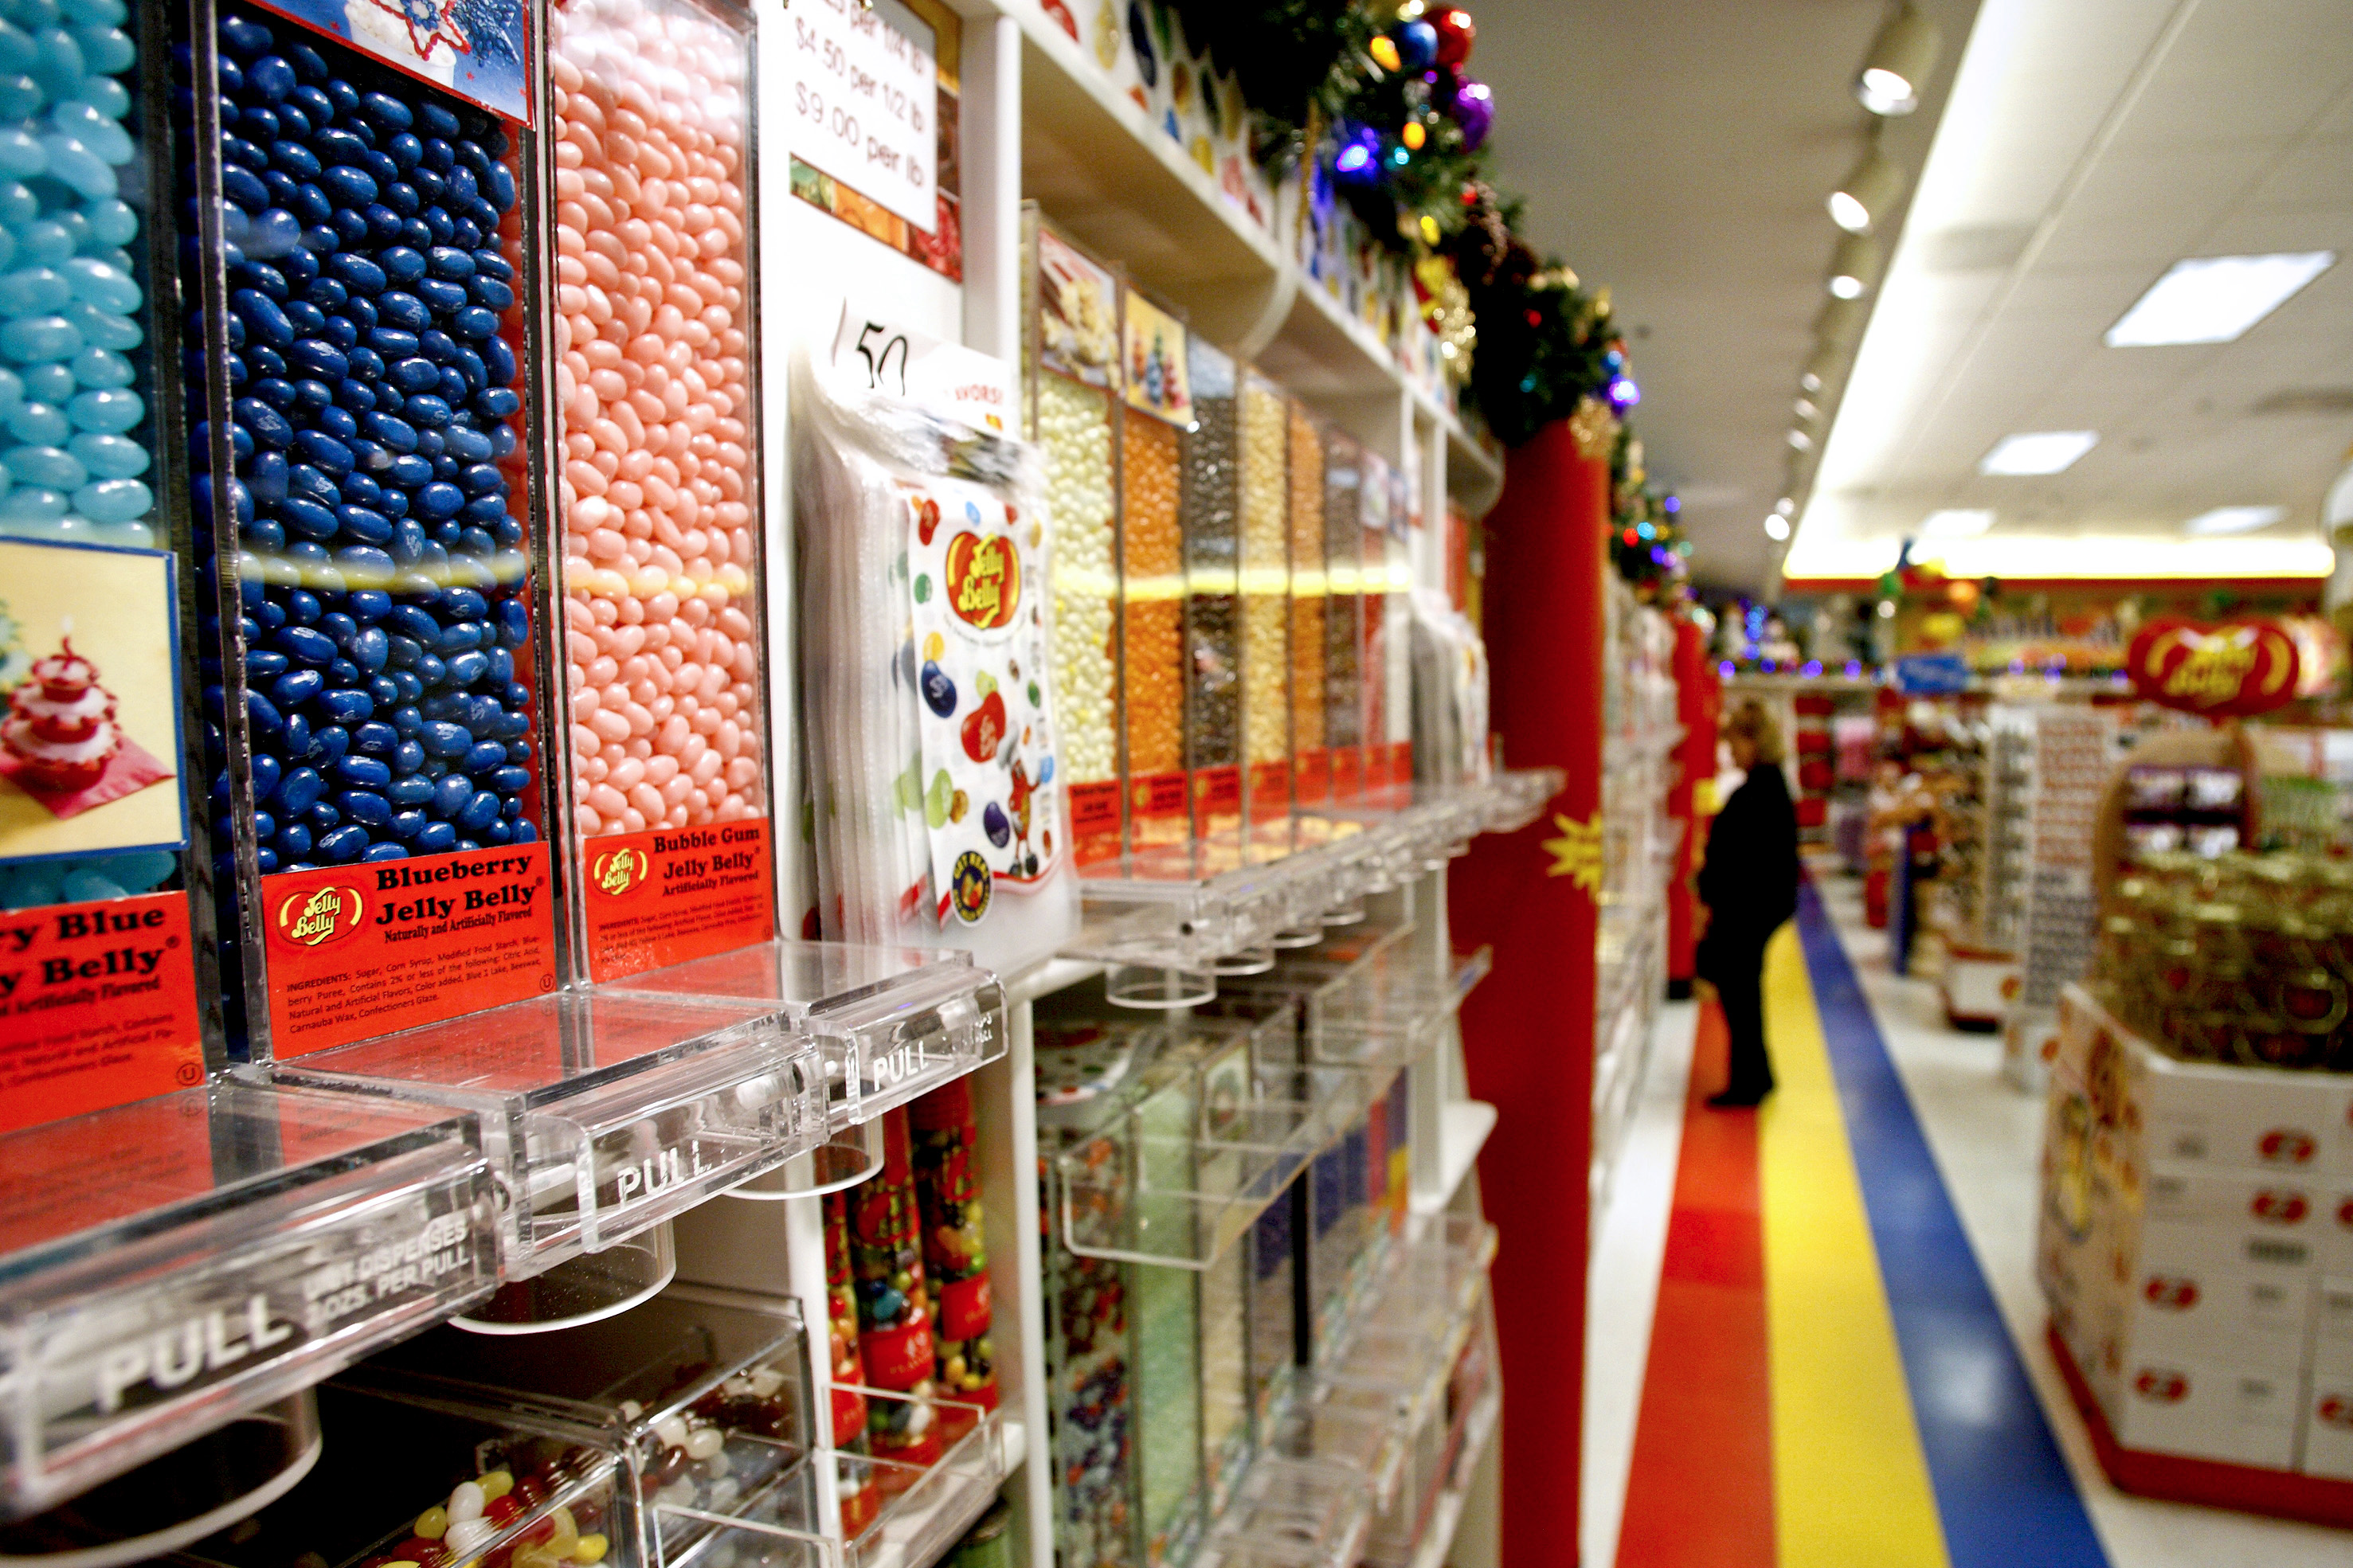 Jelly beans sit for sale at the Jelly Belly Candy Co. store next to the company's manufacturing facility in Fairfield, Calif., U.S., on Tuesday, Dec. 14, 2010.